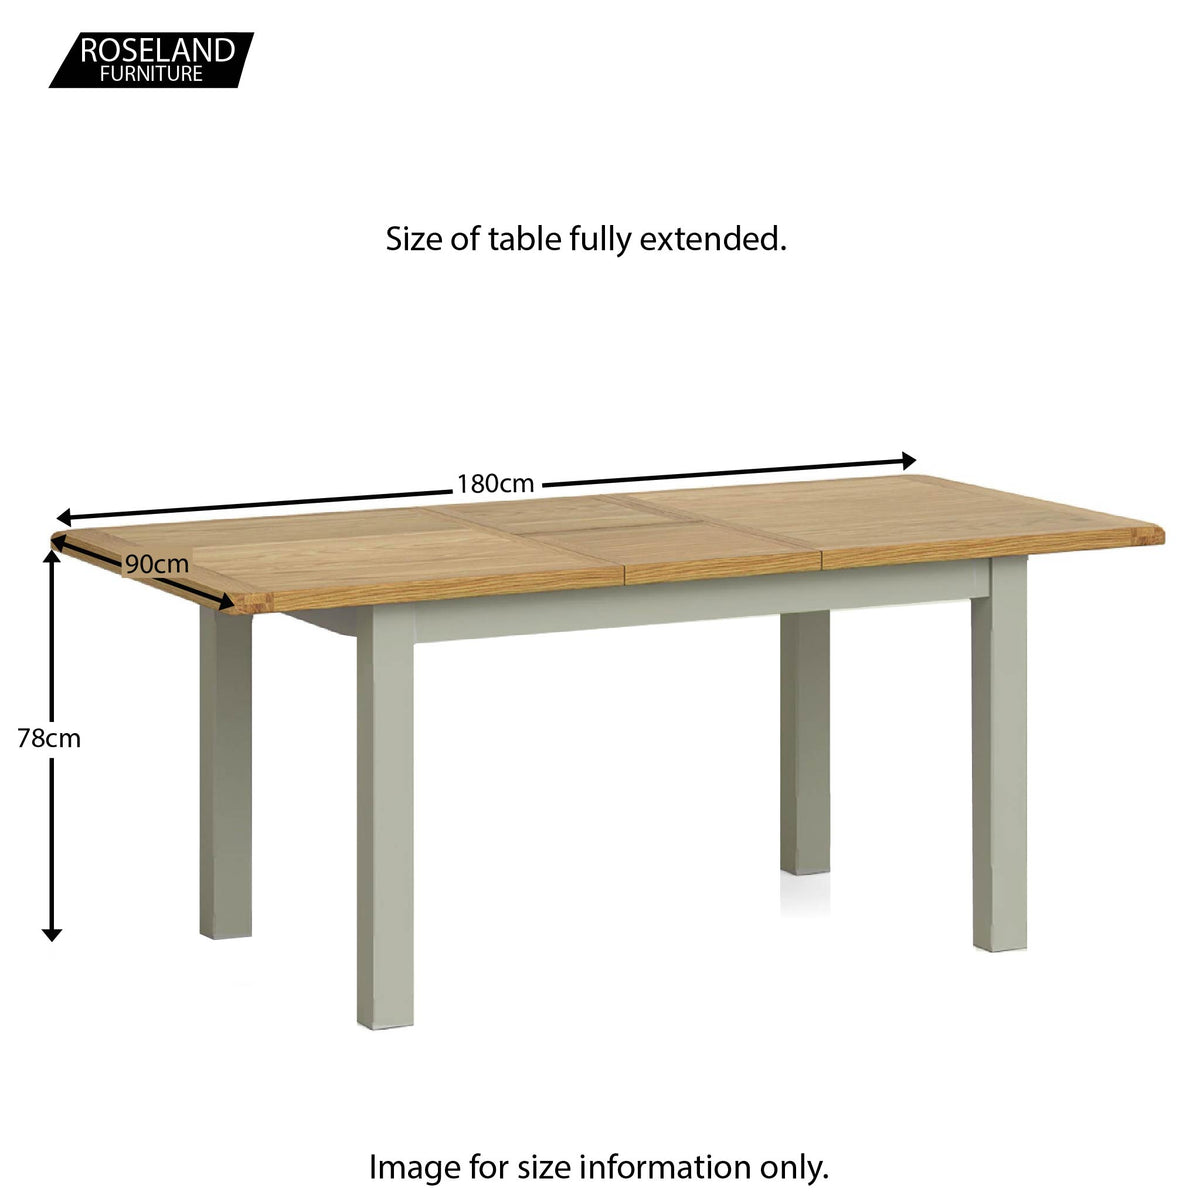 Padstow Grey 140 - 180cm Extending Dining Table - Size Guide of Table Fully Extended